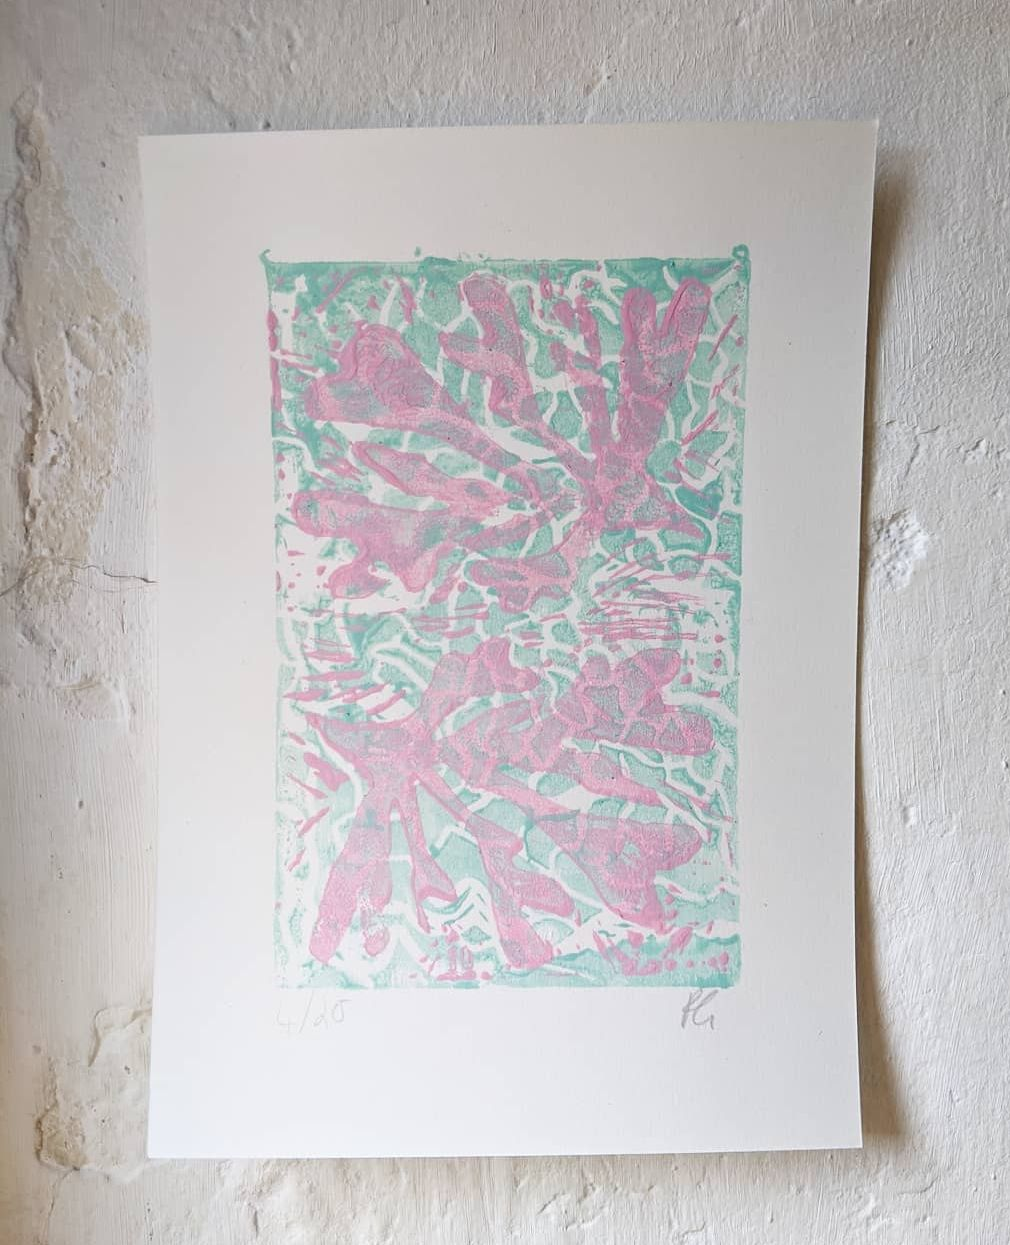 Pastel Ripped Water and Seaweeds